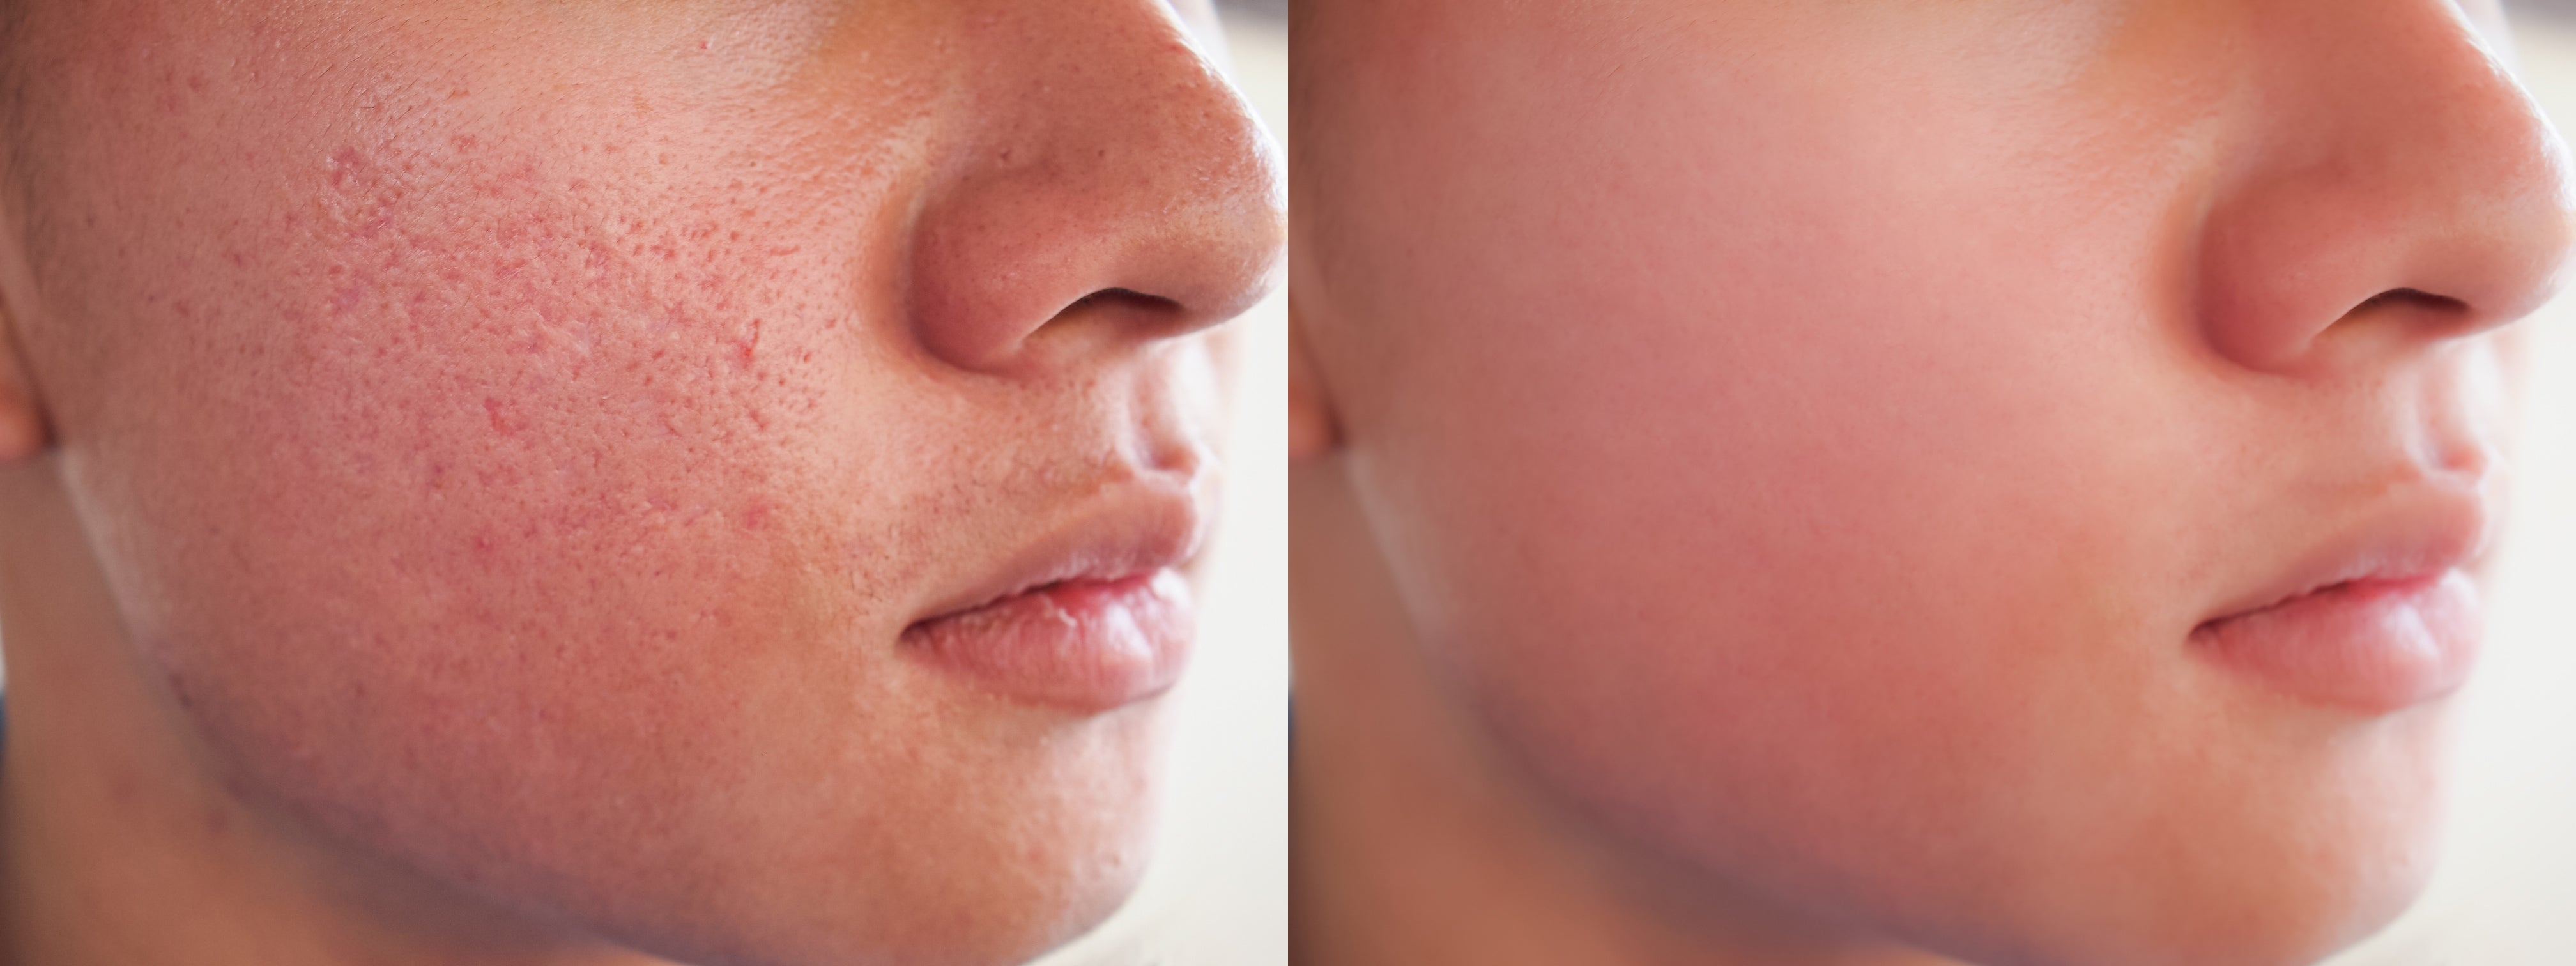 before and after spot acne pimple treatment